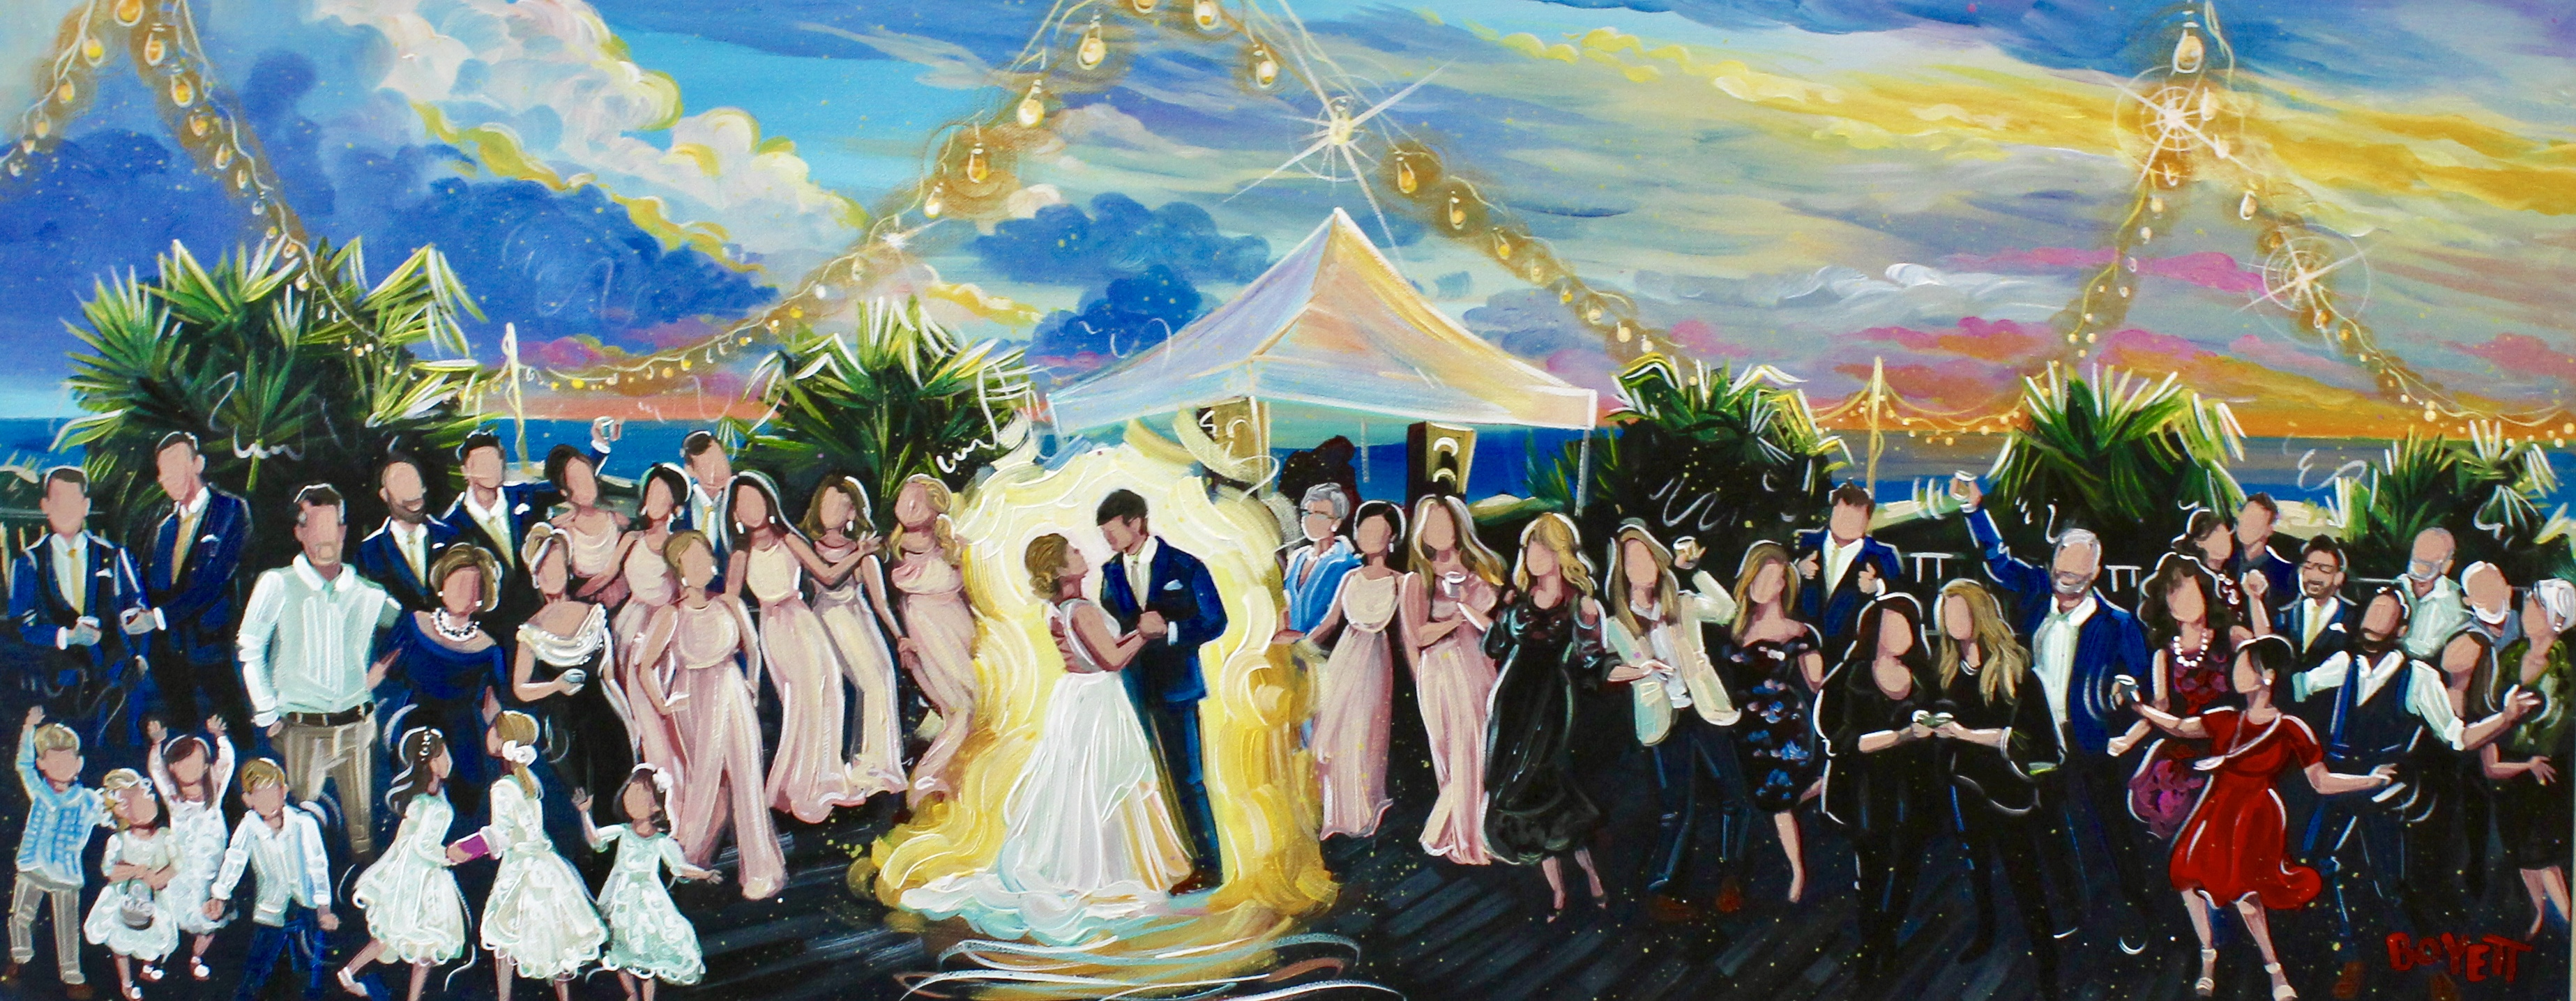 Beach Wedding Painting